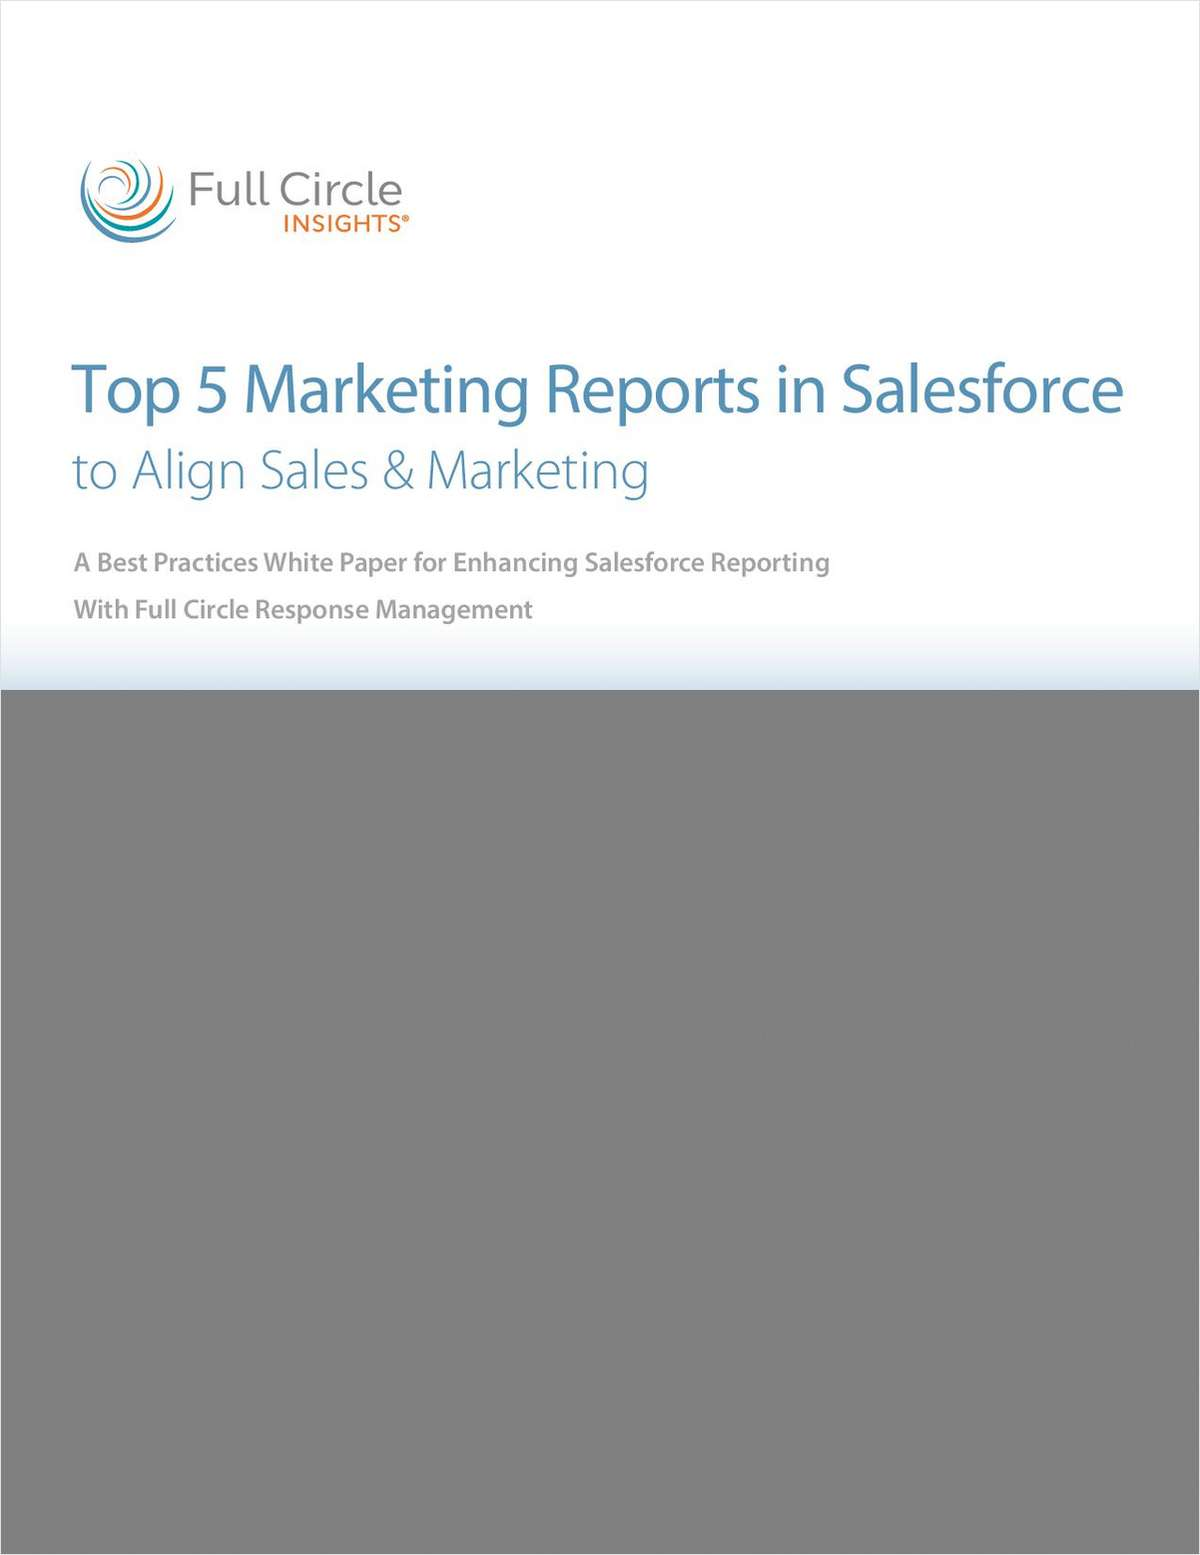 Top 5 Marketing Reports in Salesforce to Align Sales & Marketing